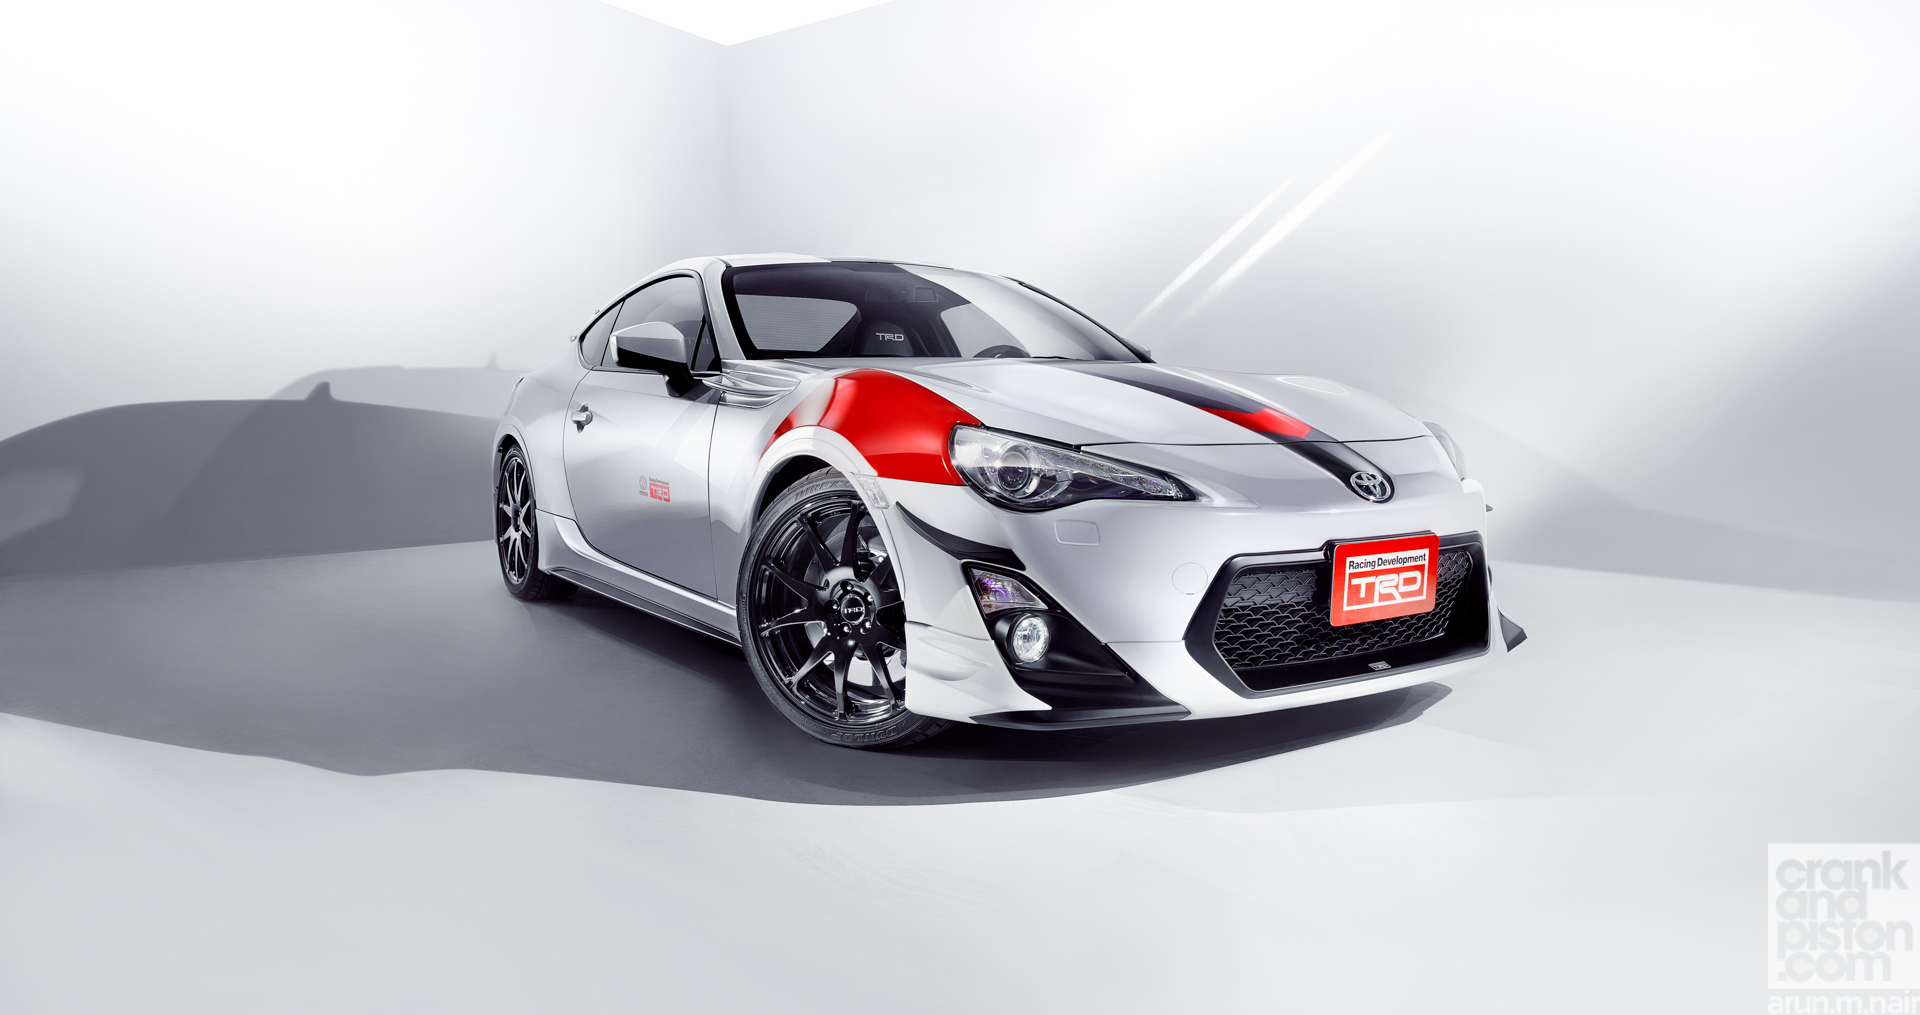 Toyota 86 Trd Crankandpiston Wallpapers-01 - Toyota Trd Racing , HD Wallpaper & Backgrounds